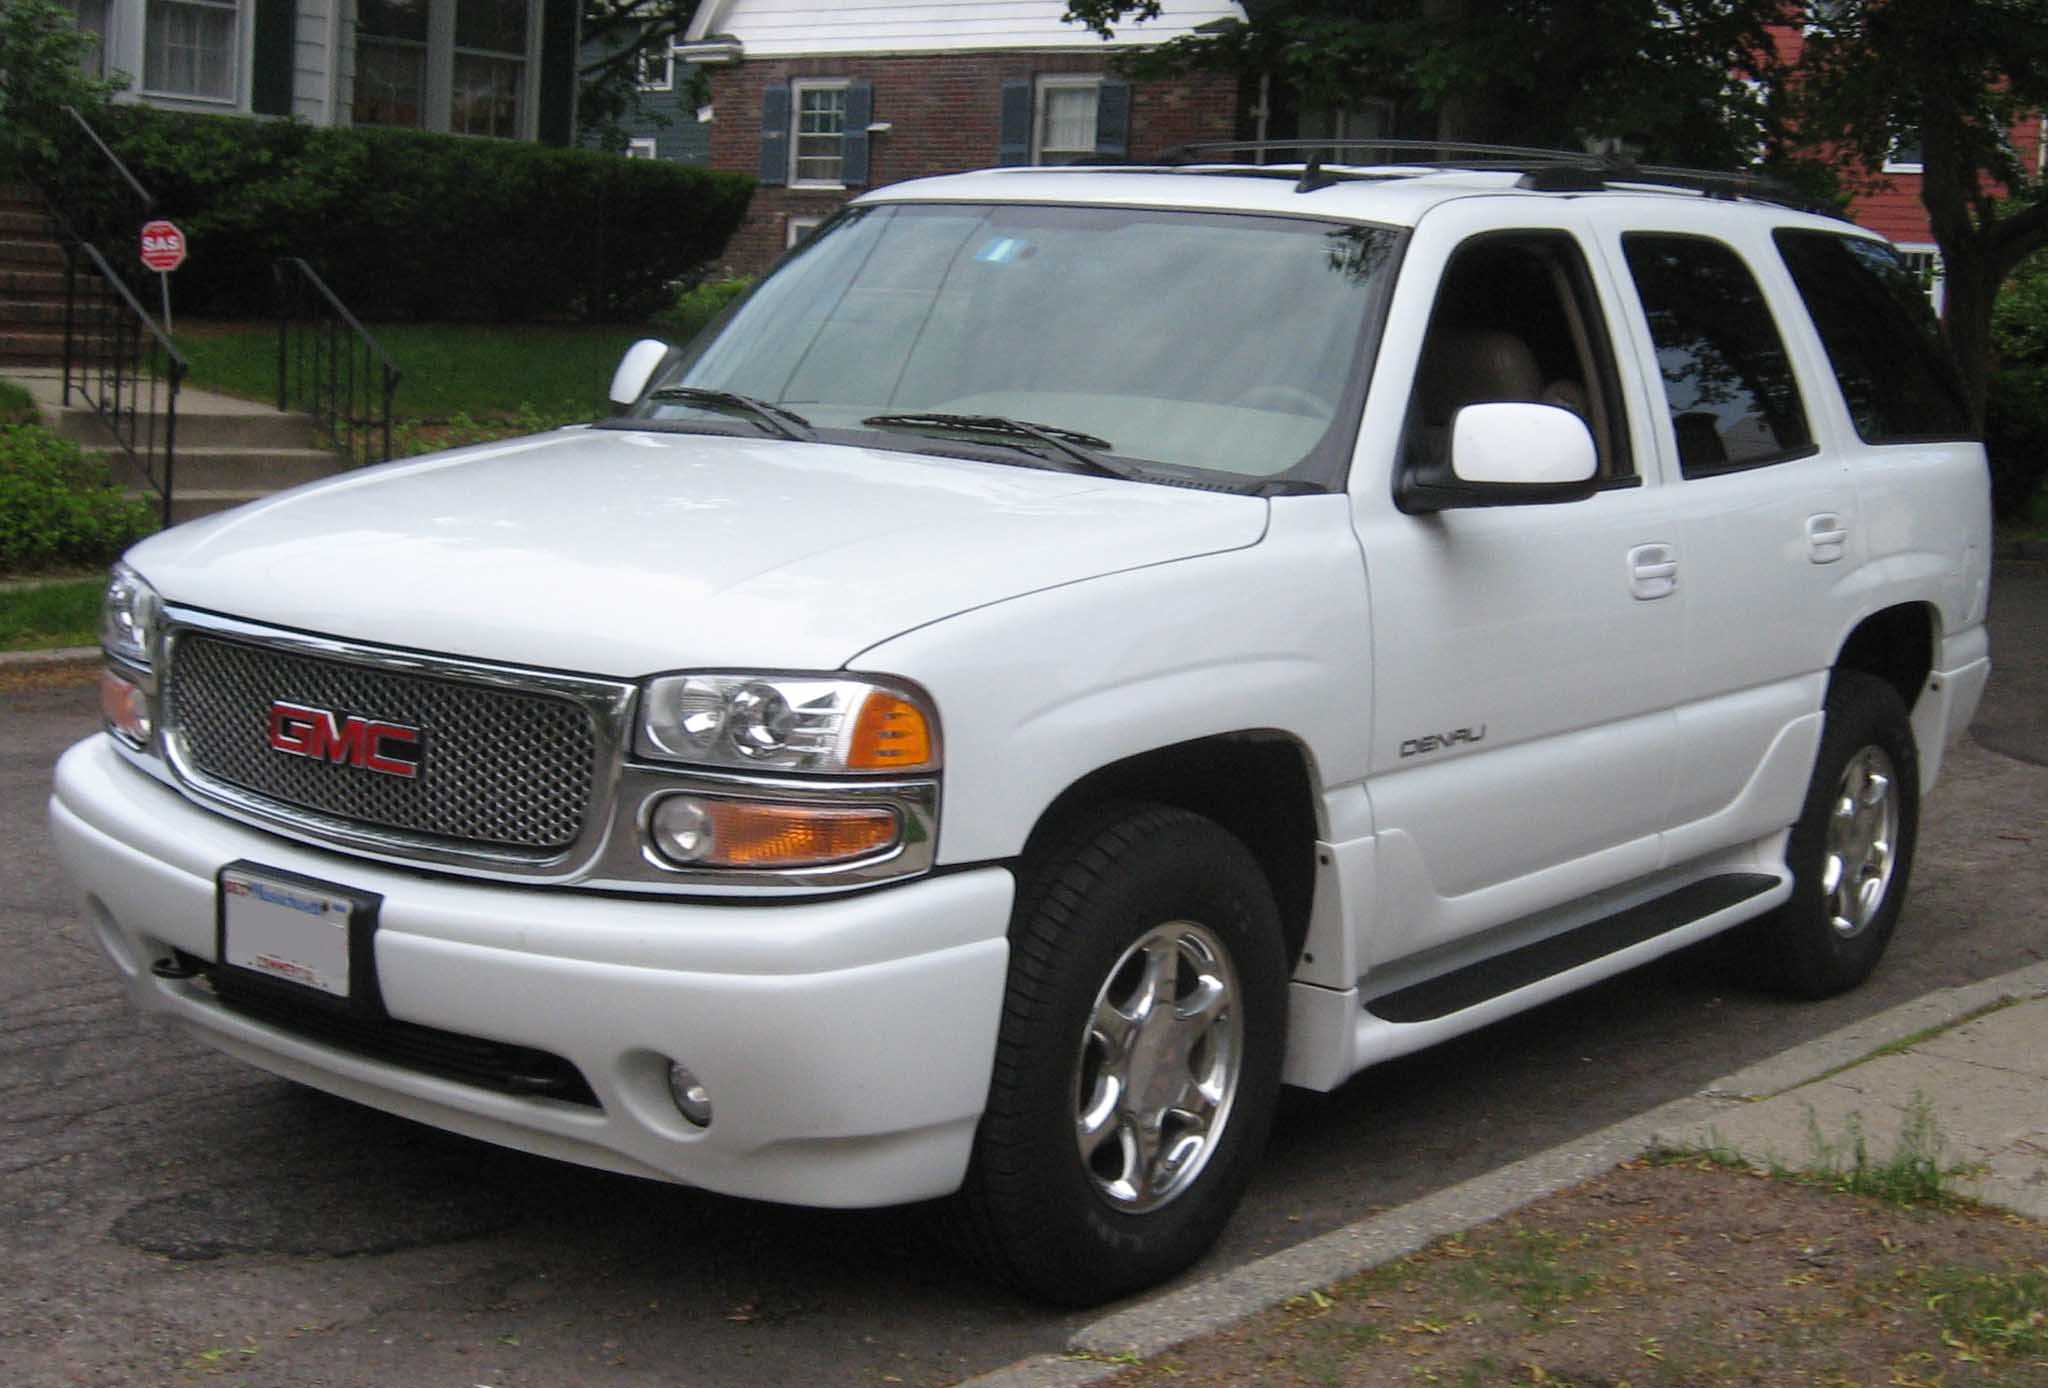 Gmc yukon photo - 1